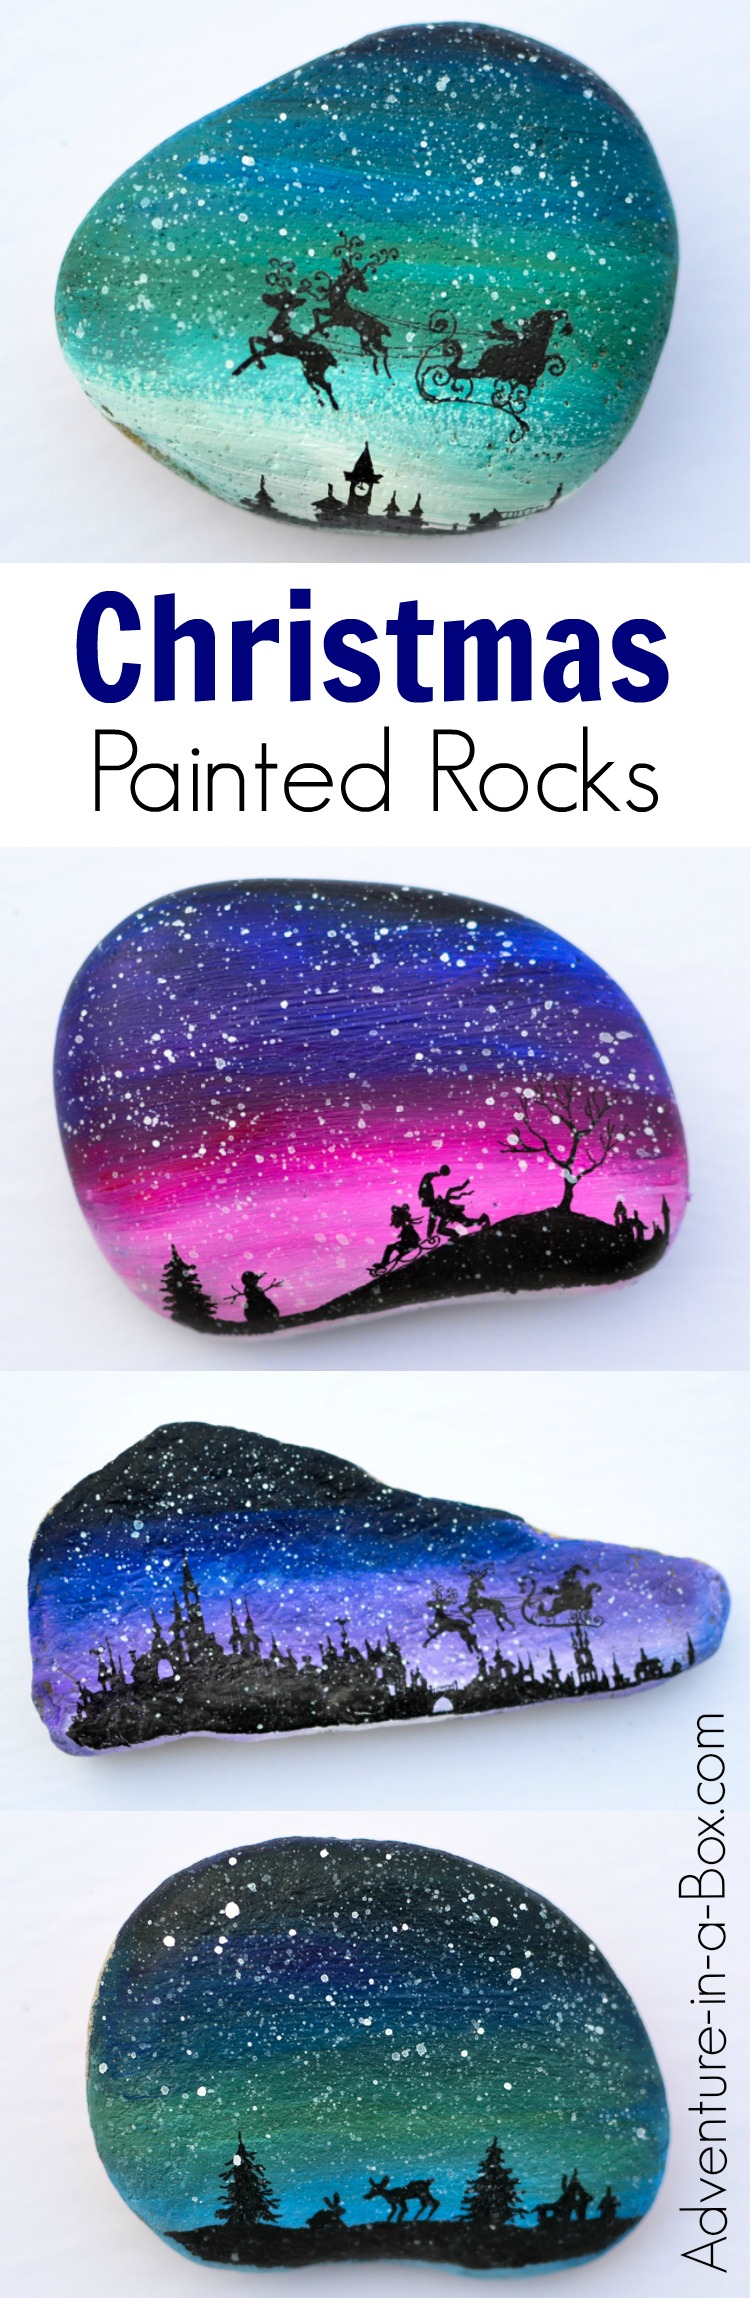 Decorate rocks with magical Christmas silhouettes and a snowy sky! Santa Claus in a sleigh, reindeer, a winter forest and children playing in the snow - it's a great selection for a festive rock painting project.